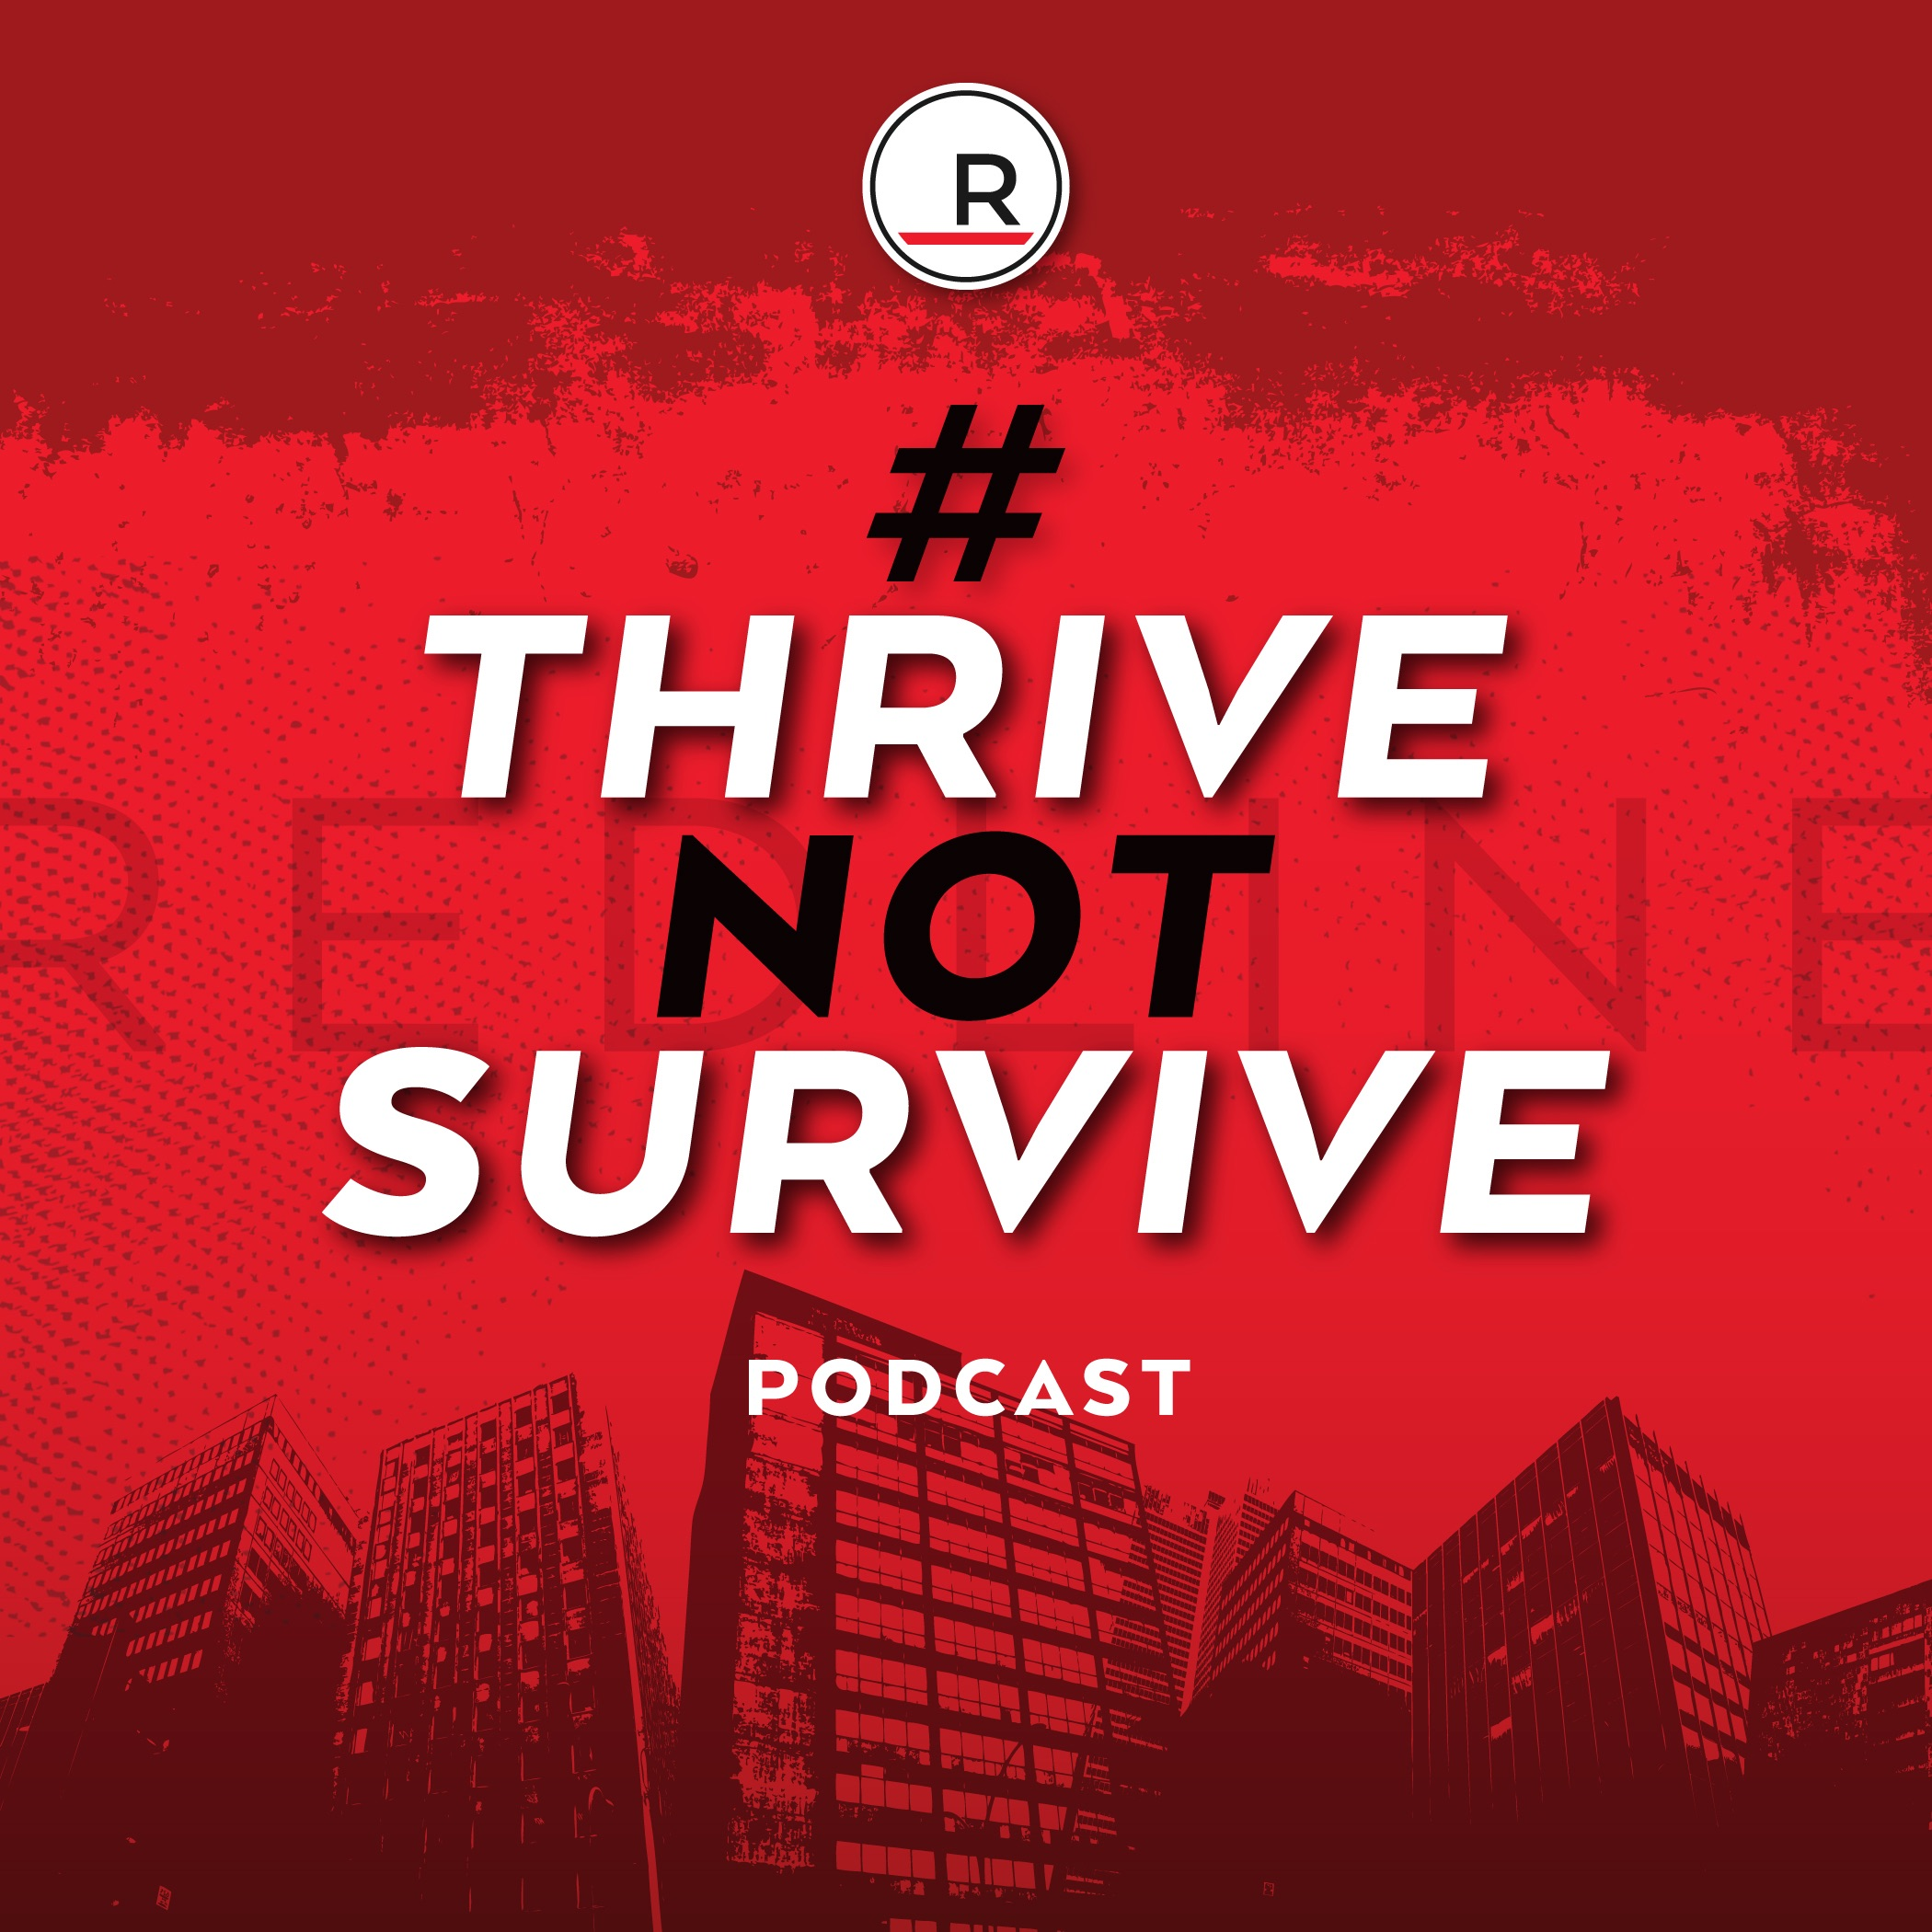 Thrive Not Survive Podcast - For REALTORS®